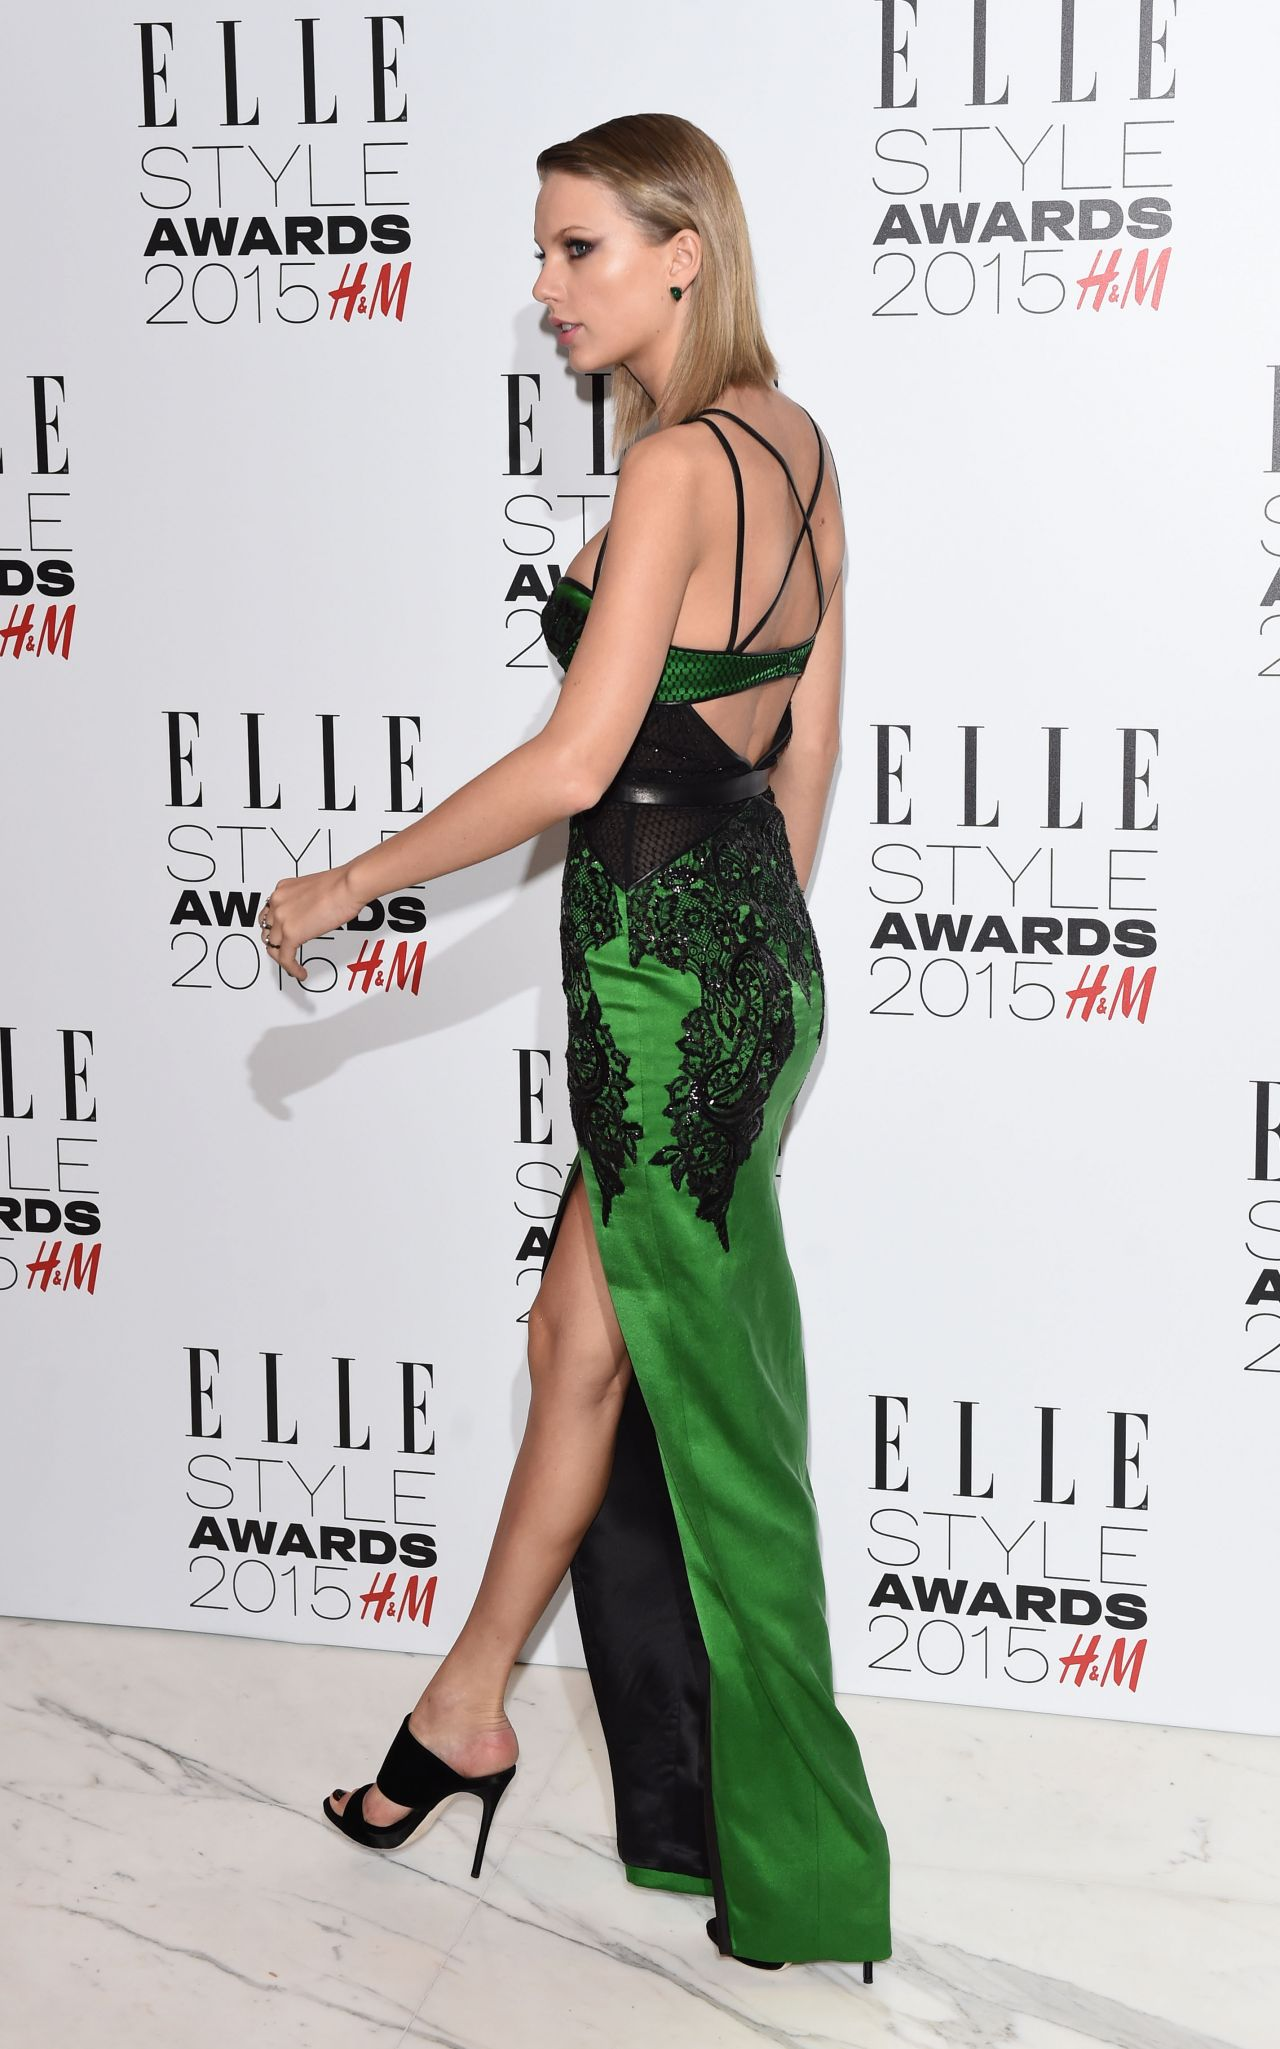 Taylor Swift In Julien Macdonald At The 2015 Elle Style Awards Fashionsizzle